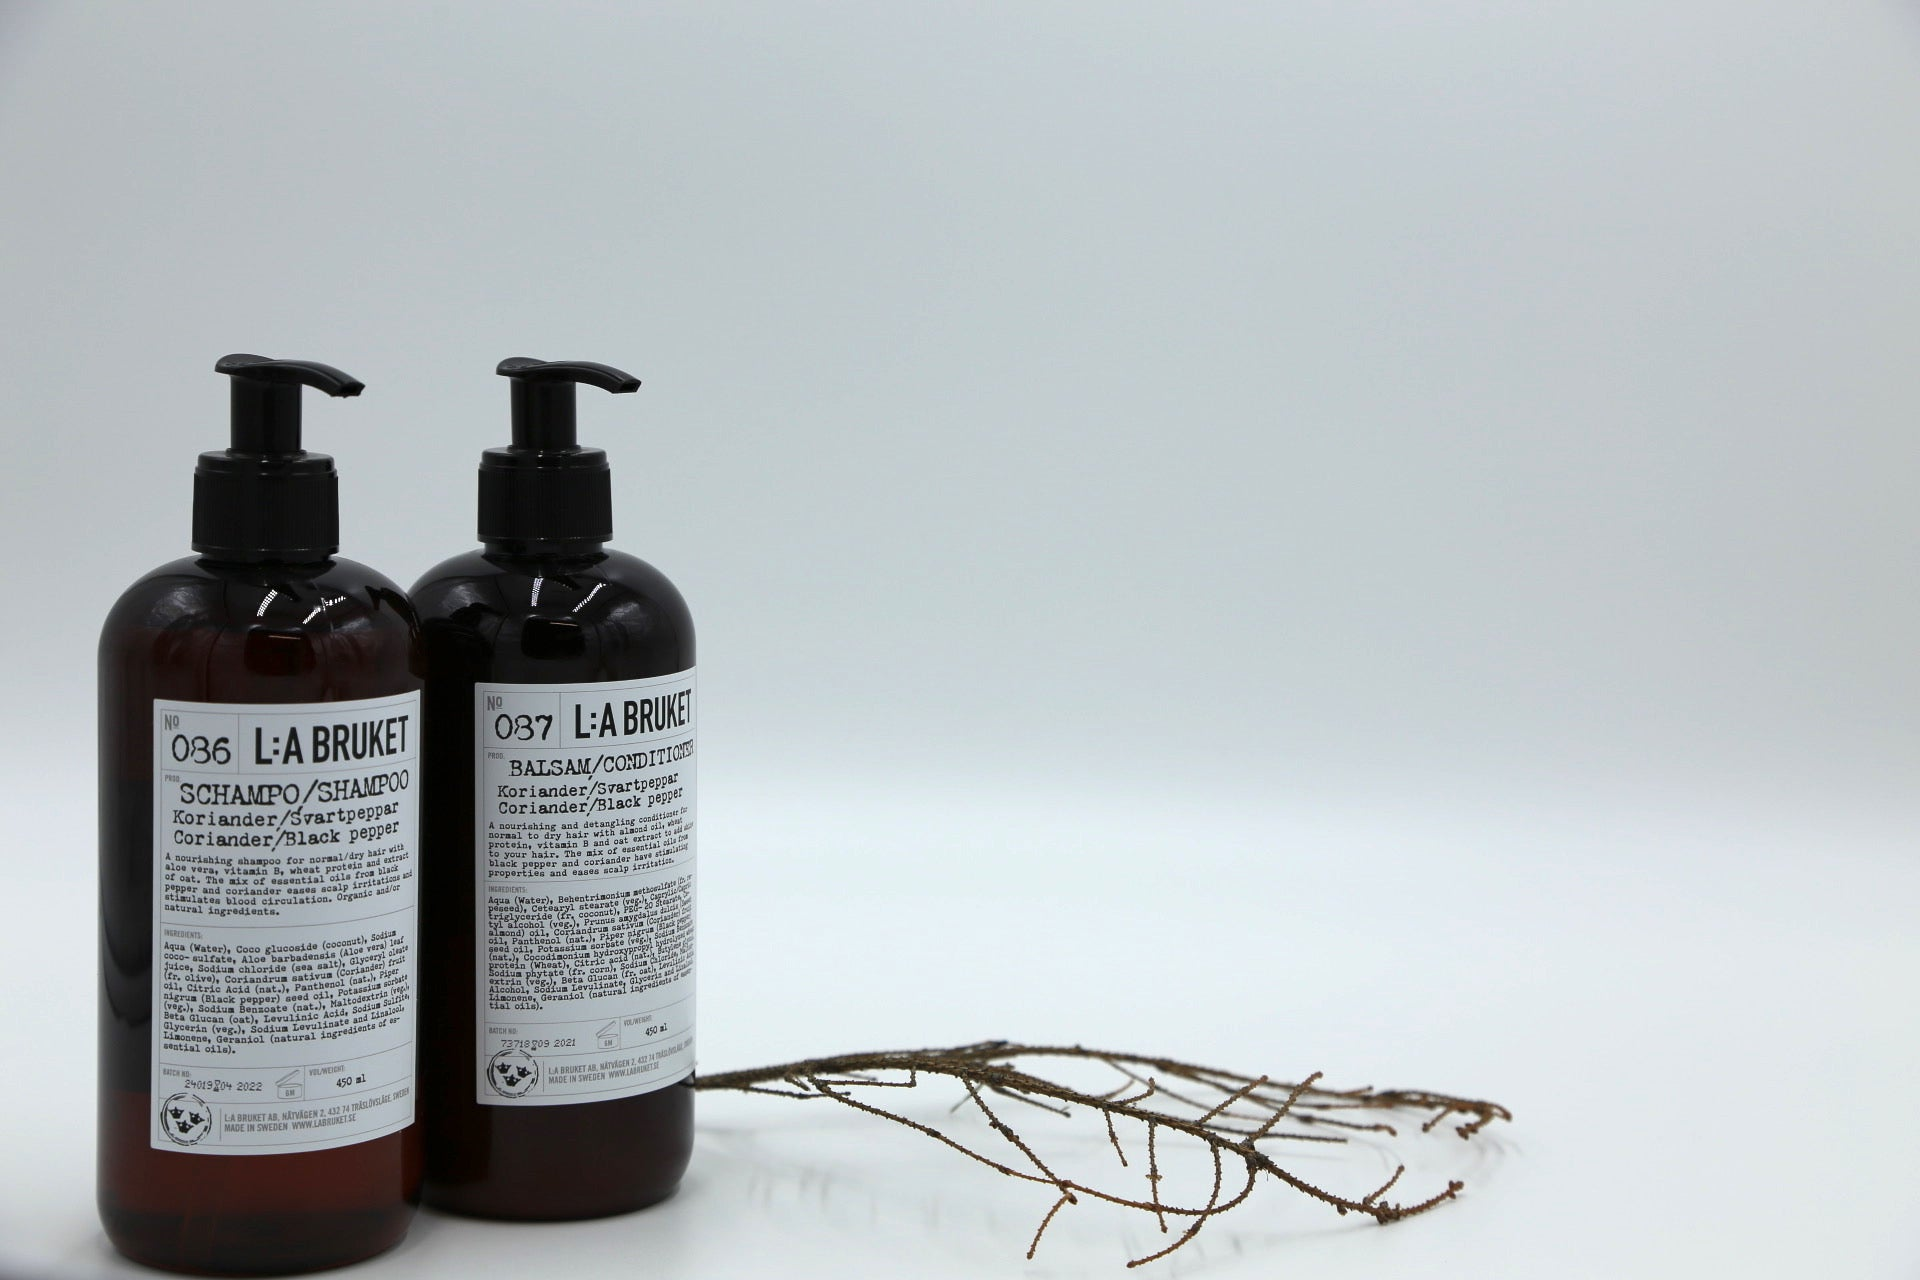 086 Shampoo | Coriander and Black Pepper - Noli